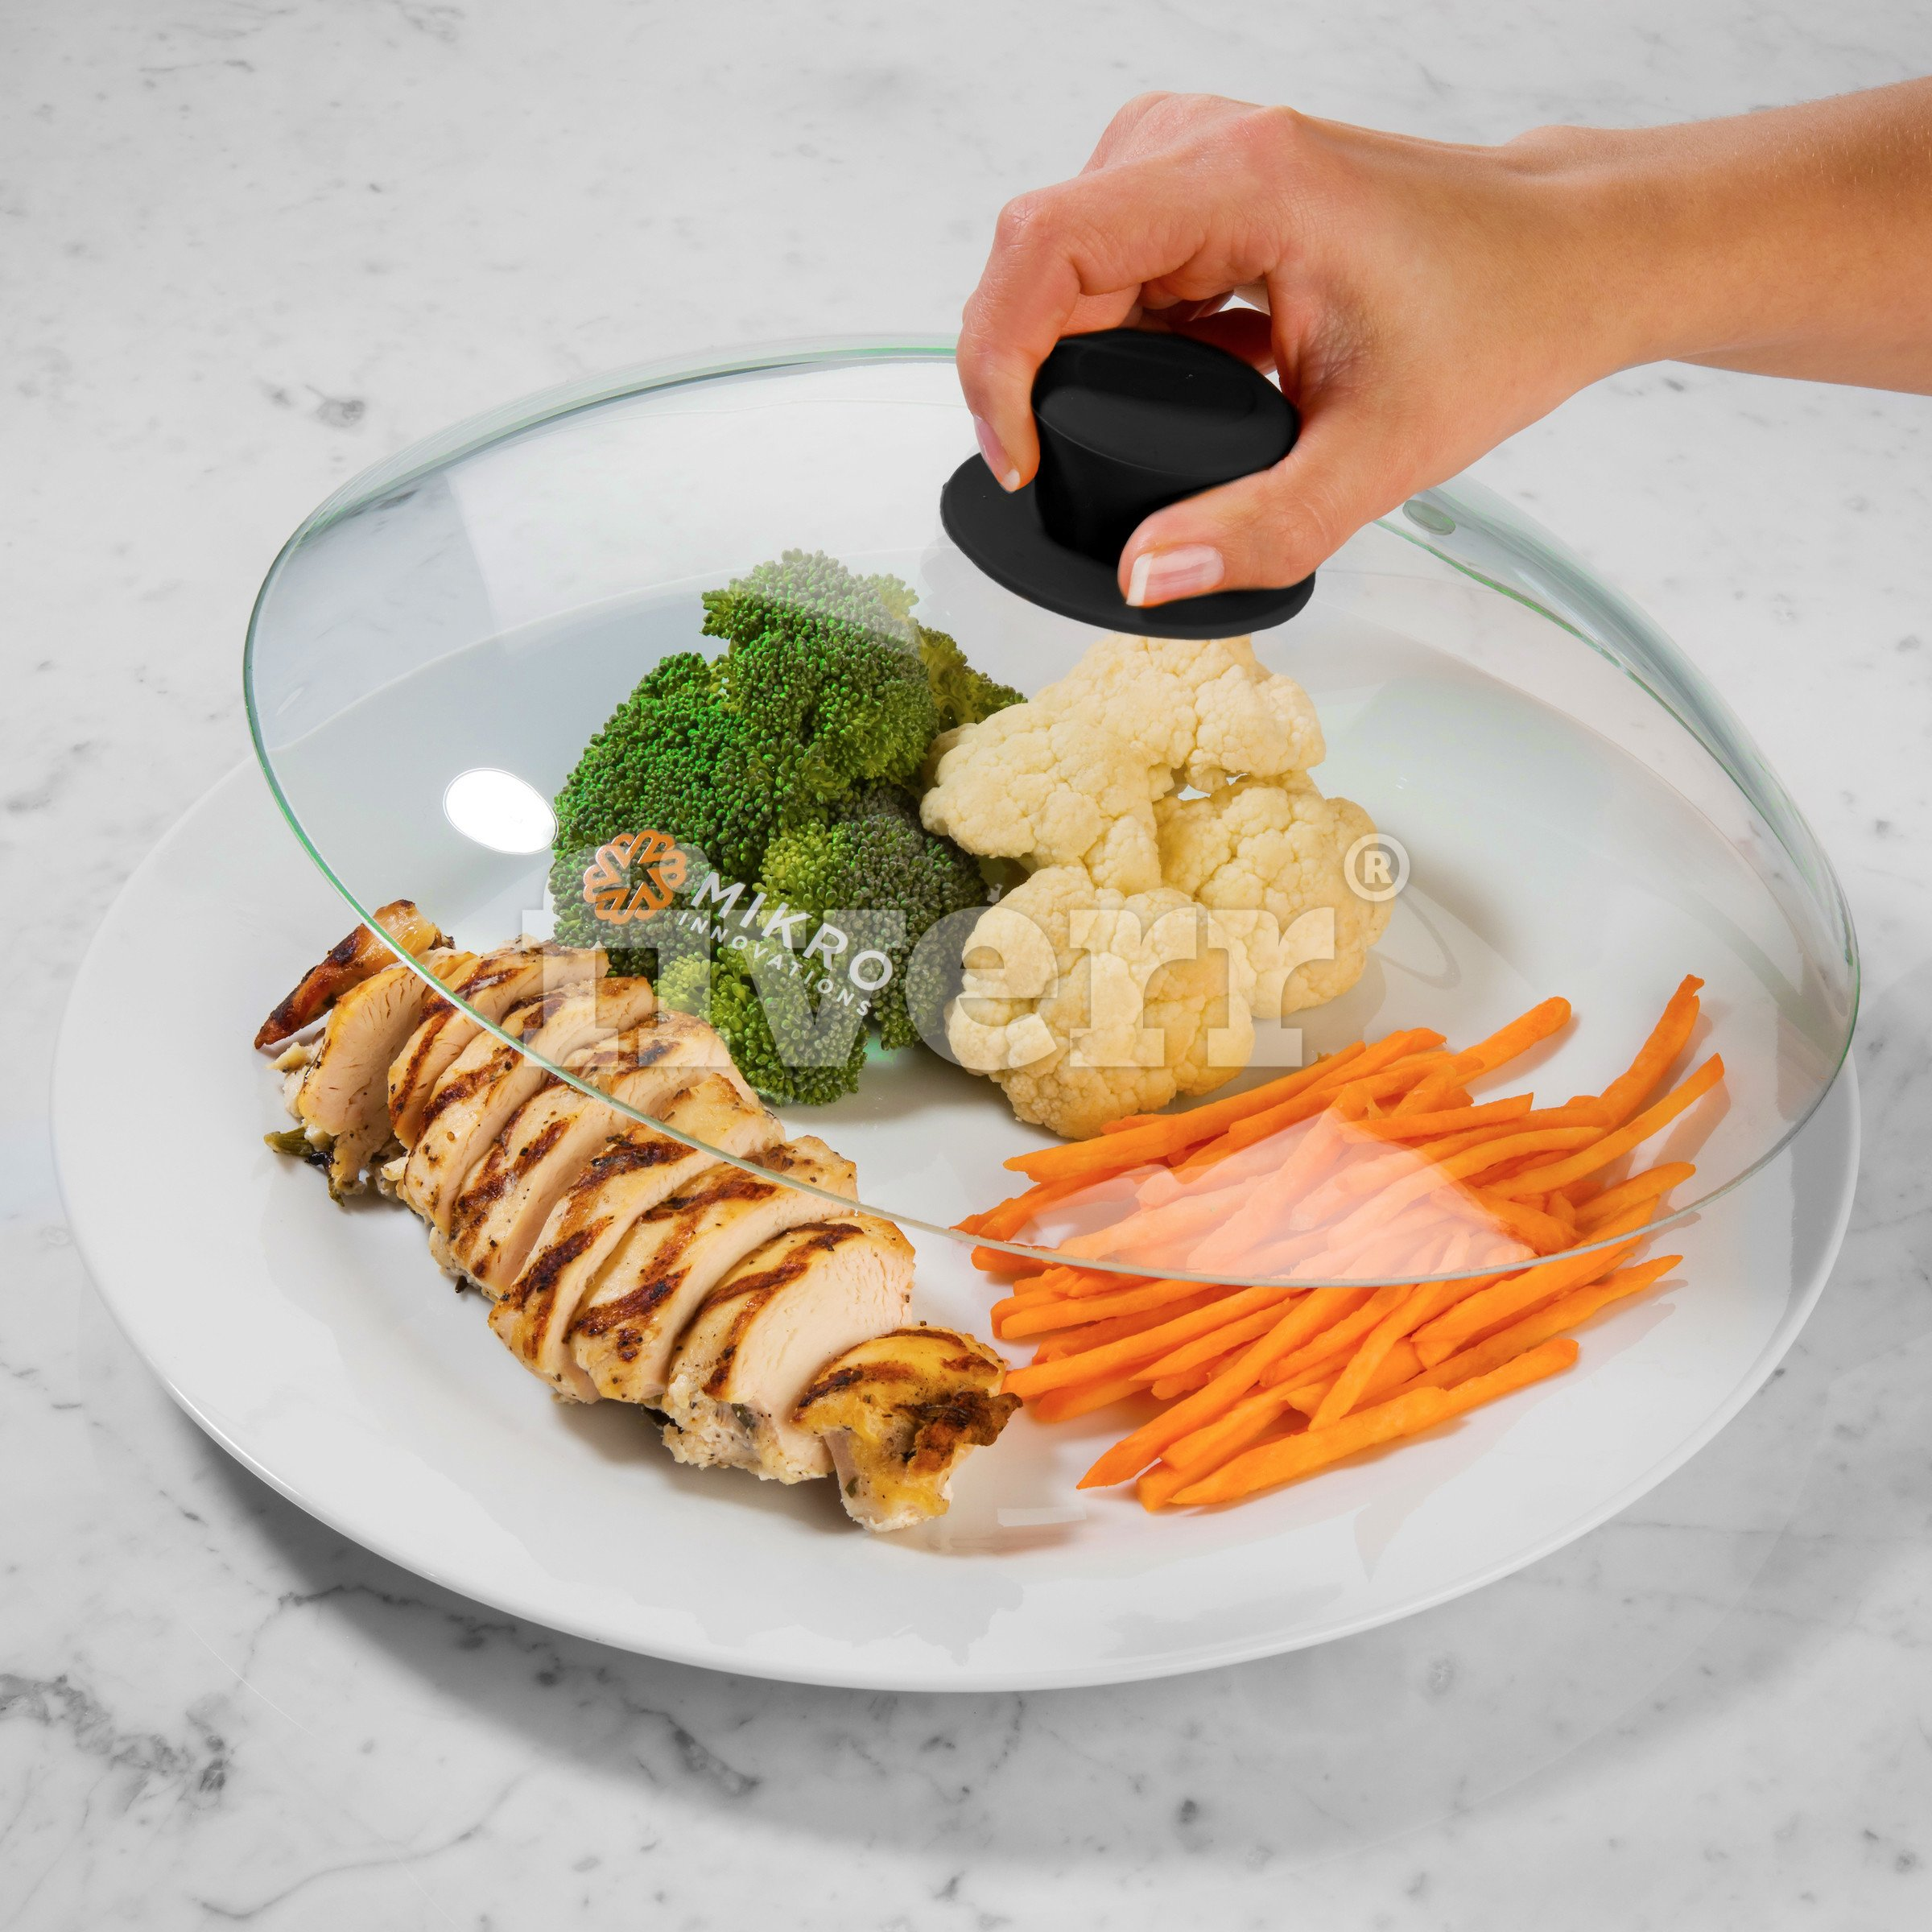 Vented Microwave Glass Food Plate Cover Lid with Firm Grip Silicone Handle and Hardened Safe Tempered Glass Design - Black Knob by Mikro Innovations (Image #3)